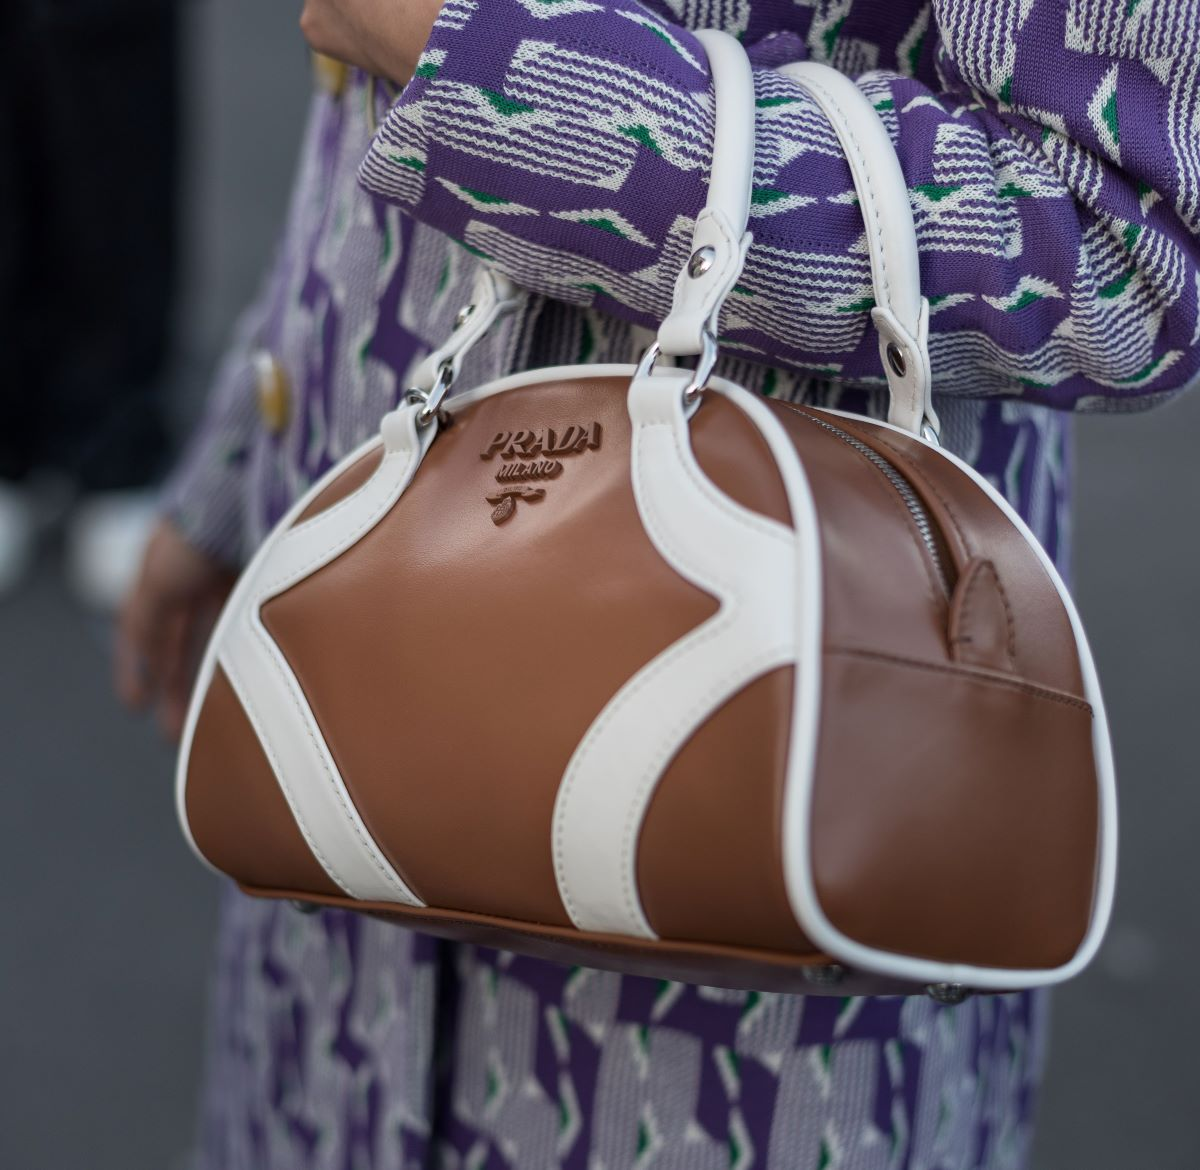 """Italian luxury house Prada is restarting manufacturing with """"cutting edge"""" safety protocols that involve double-screening employees."""